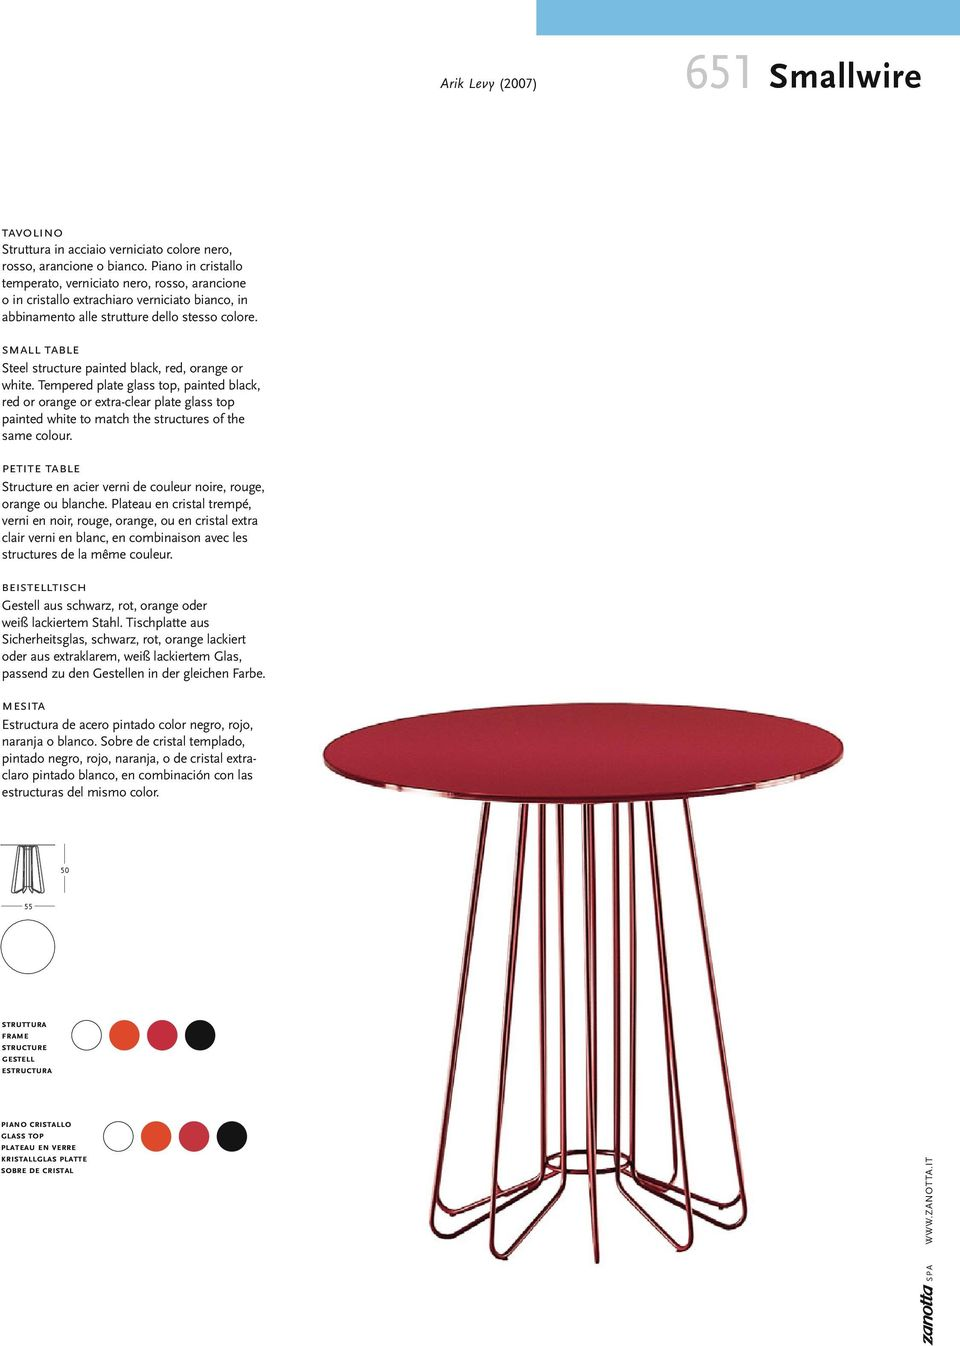 small table Steel structure painted black, red, orange or white.